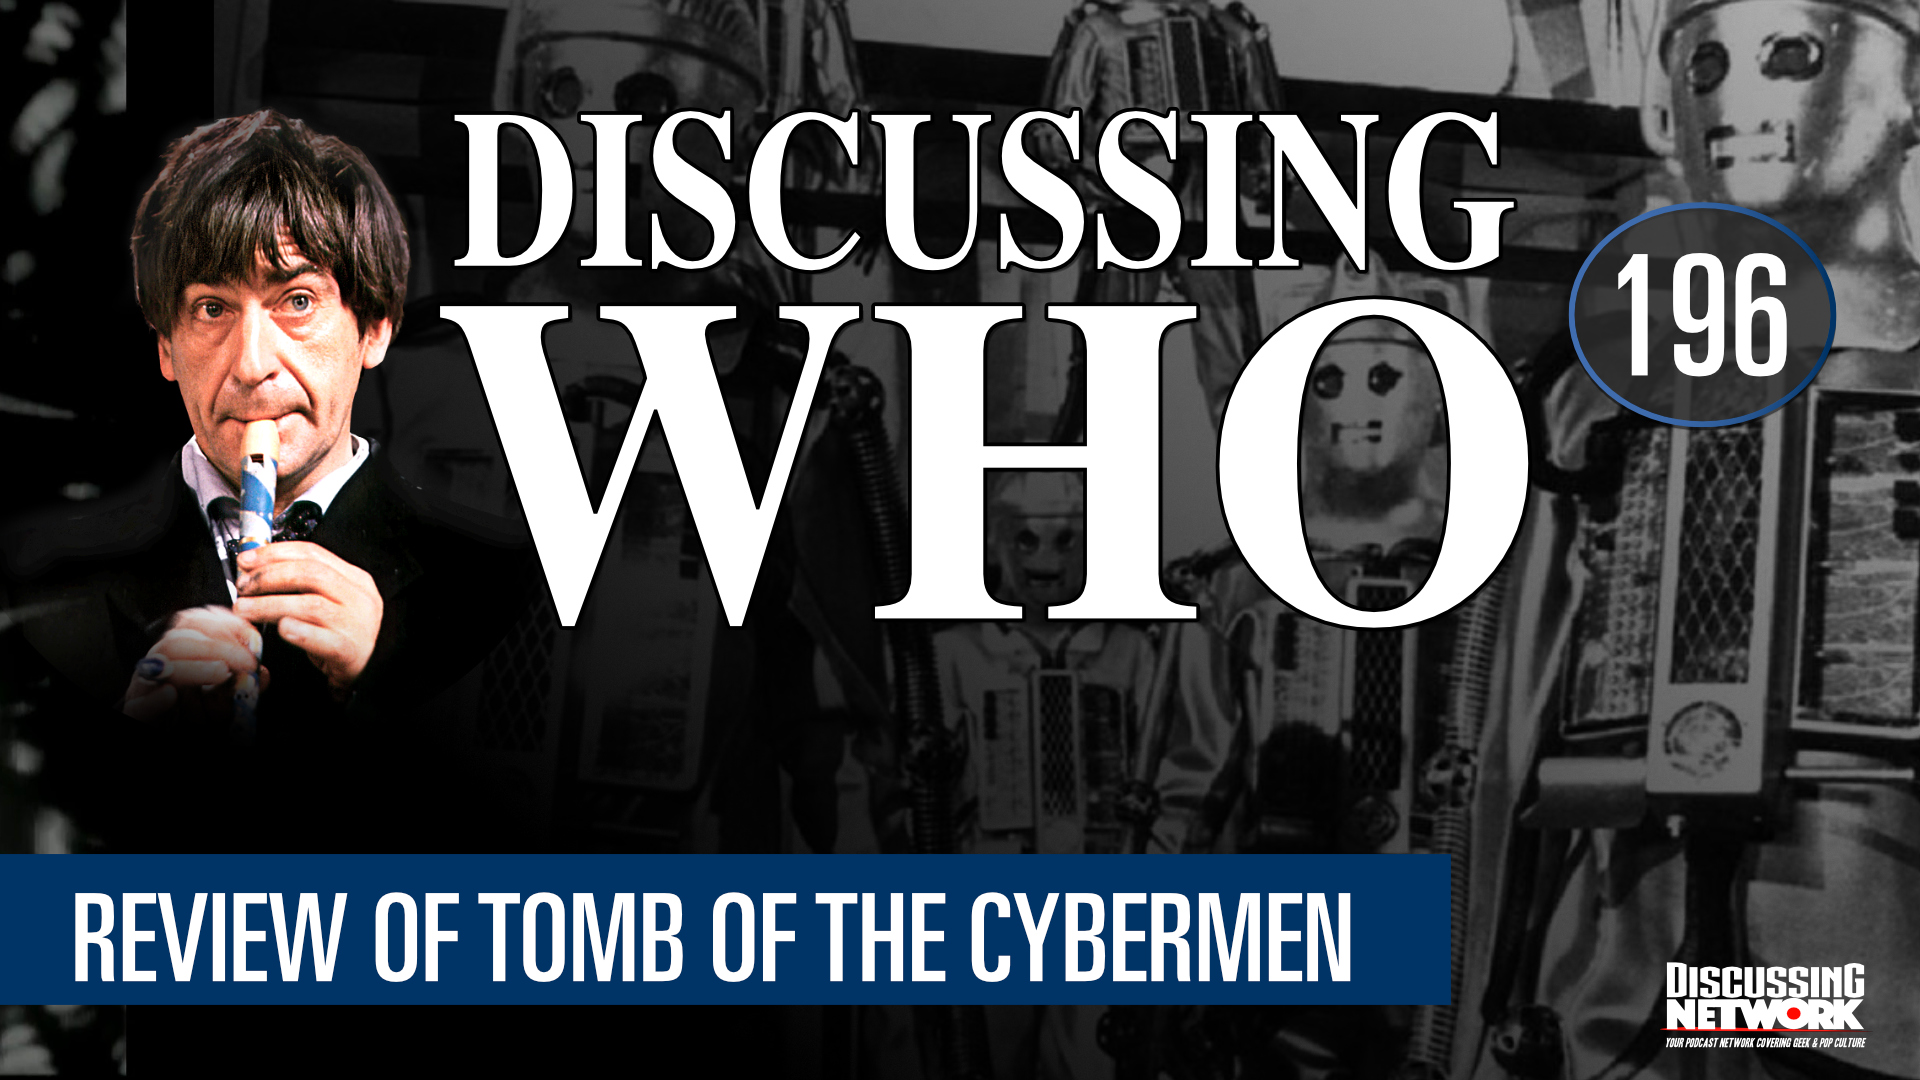 Review of Tomb of the Cybermen